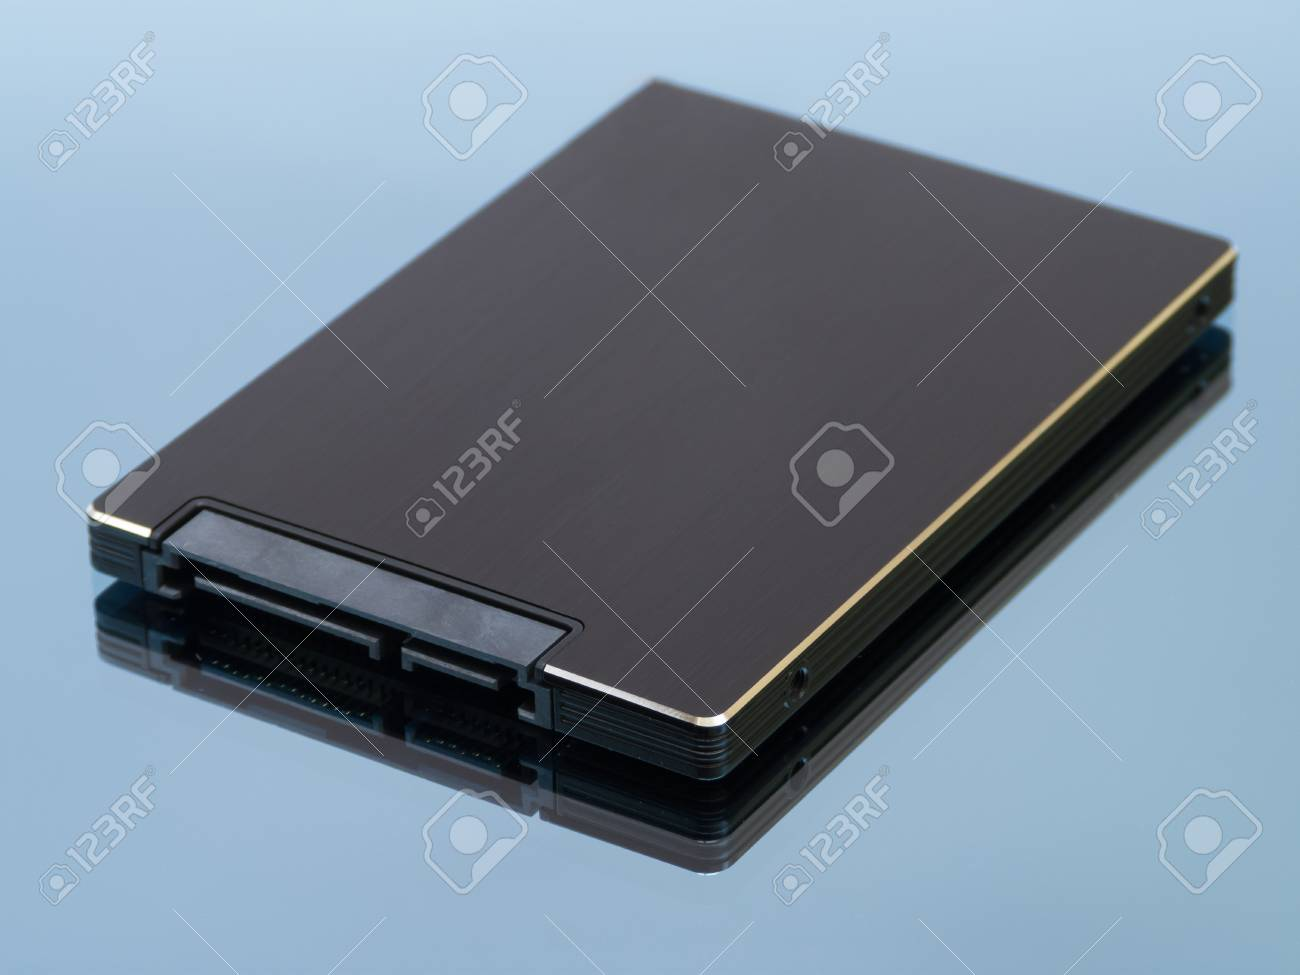 Solid state drive on blue background with reflection Stock Photo - 14855511